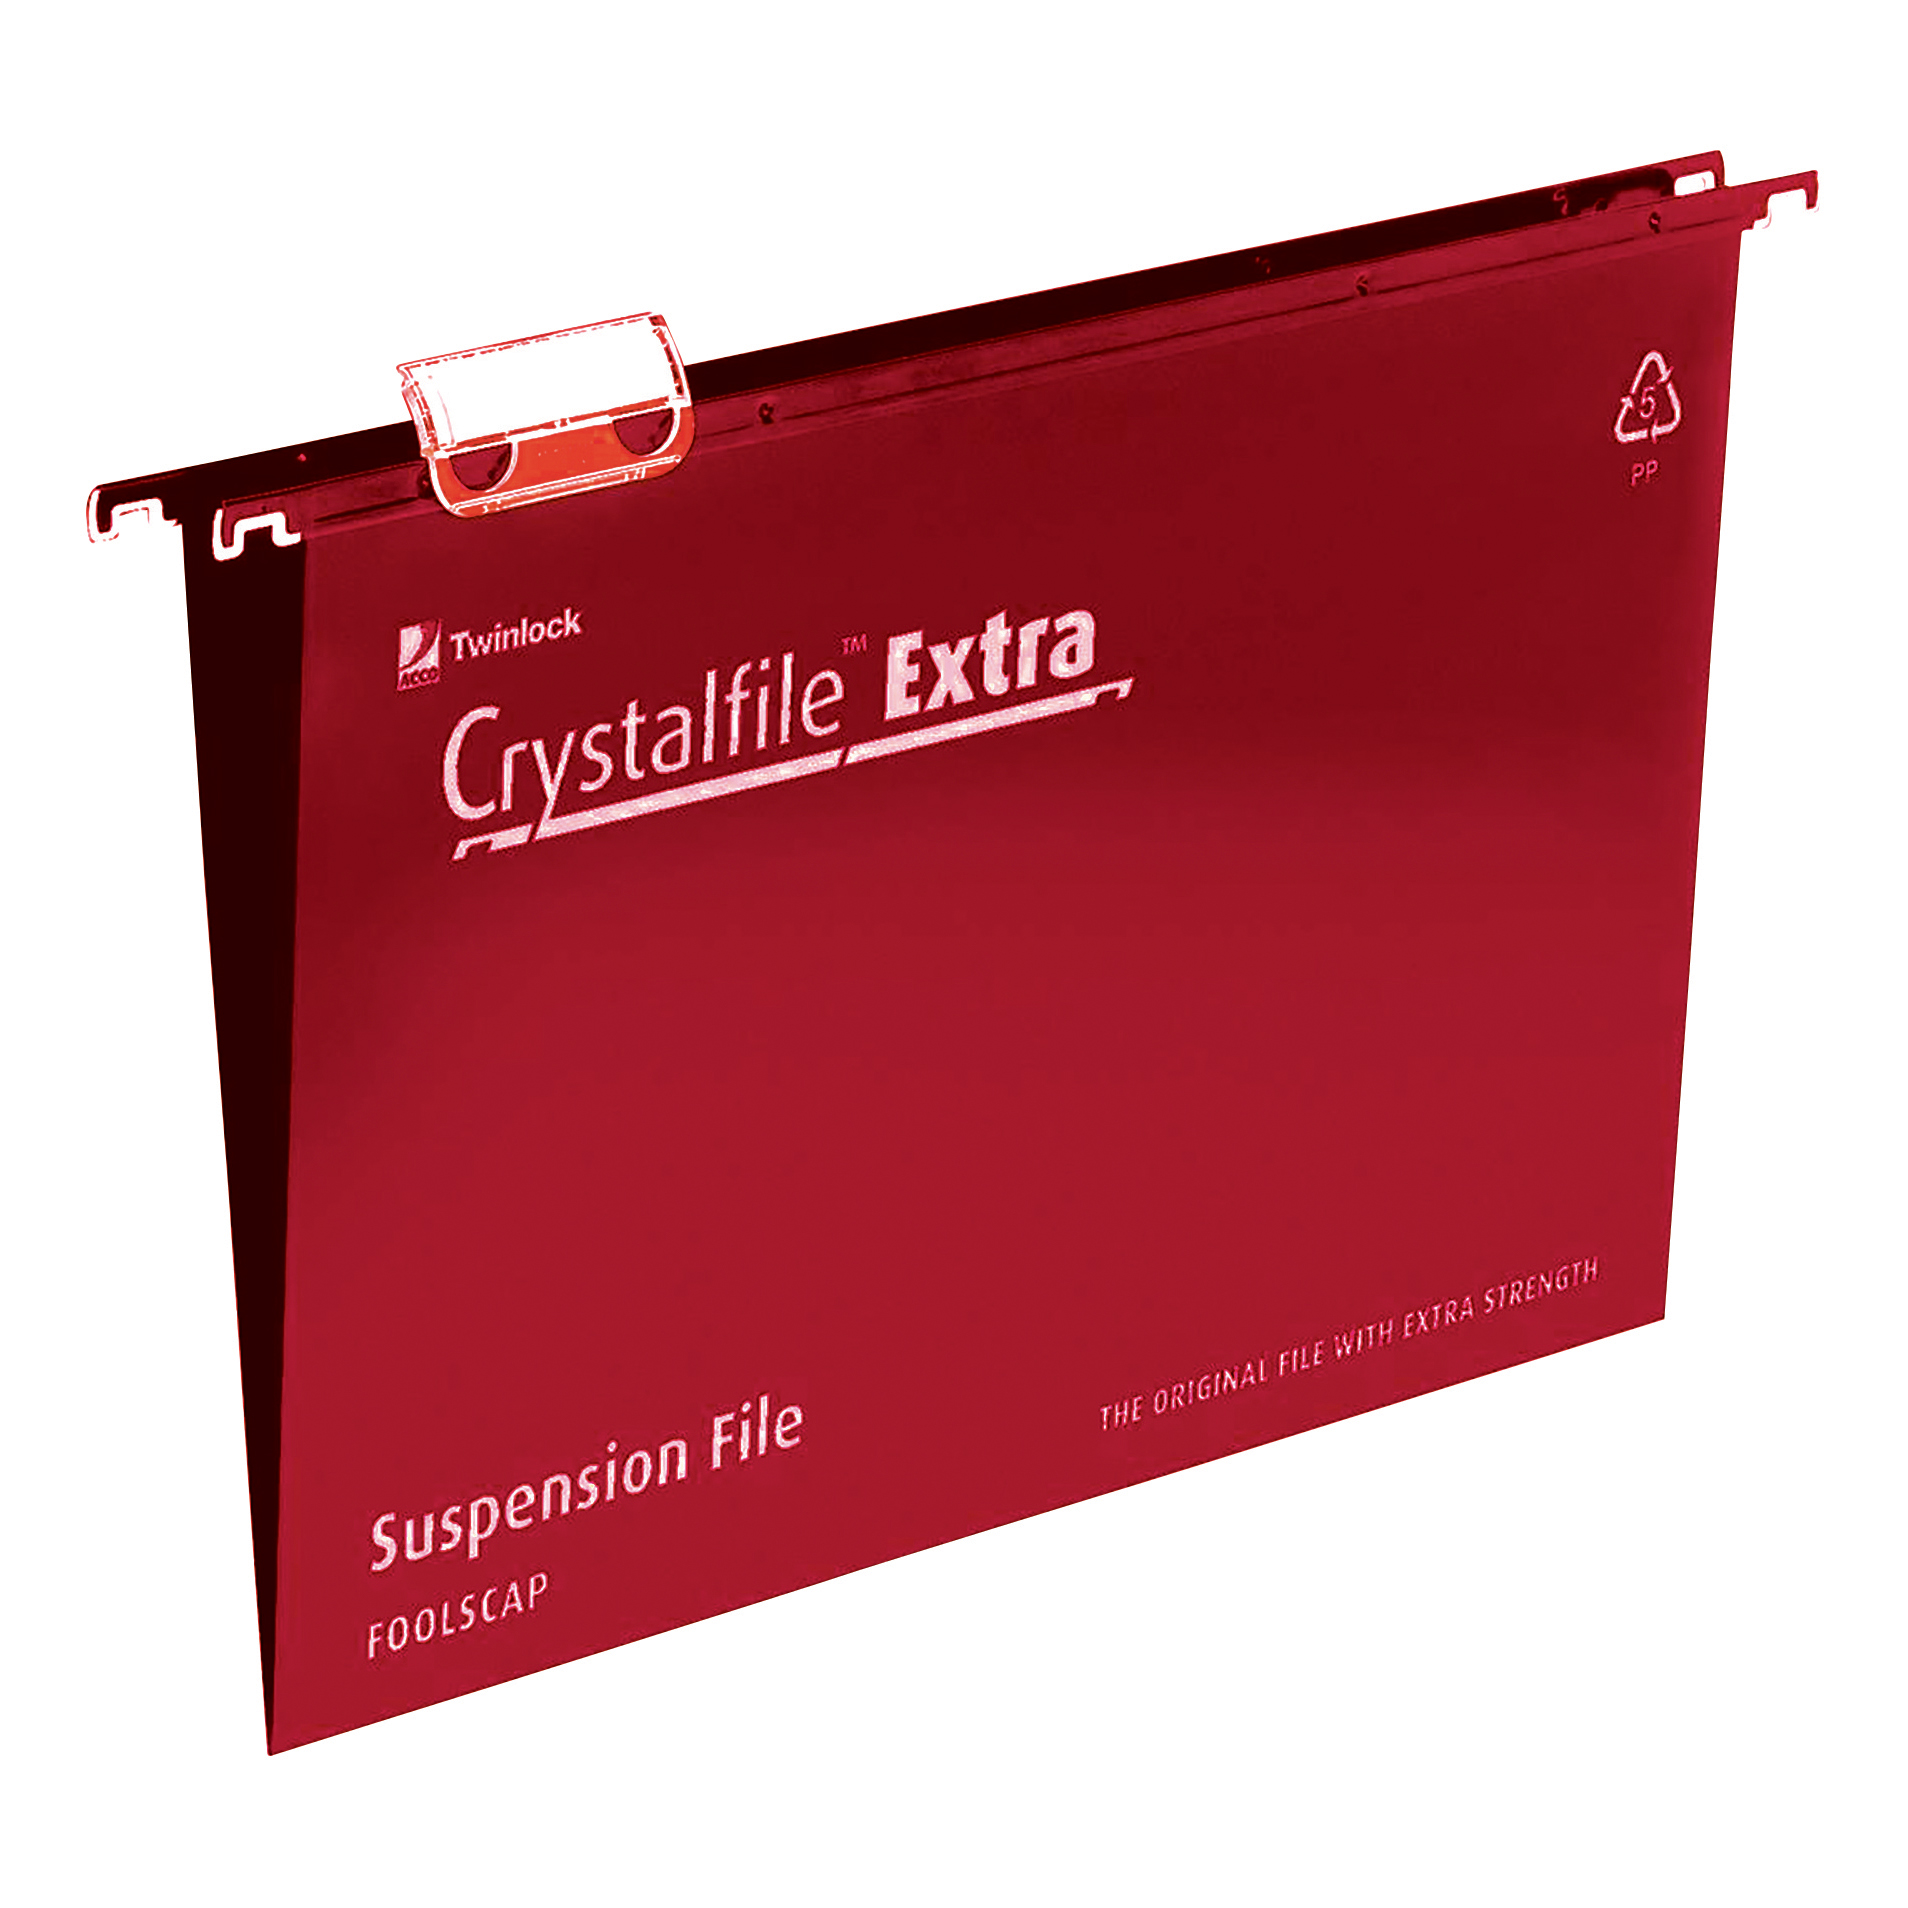 Rexel Crystalfile Extra Suspension File Polypropylene 15mm V-base Foolscap Red Ref 70629 [Pack 25]